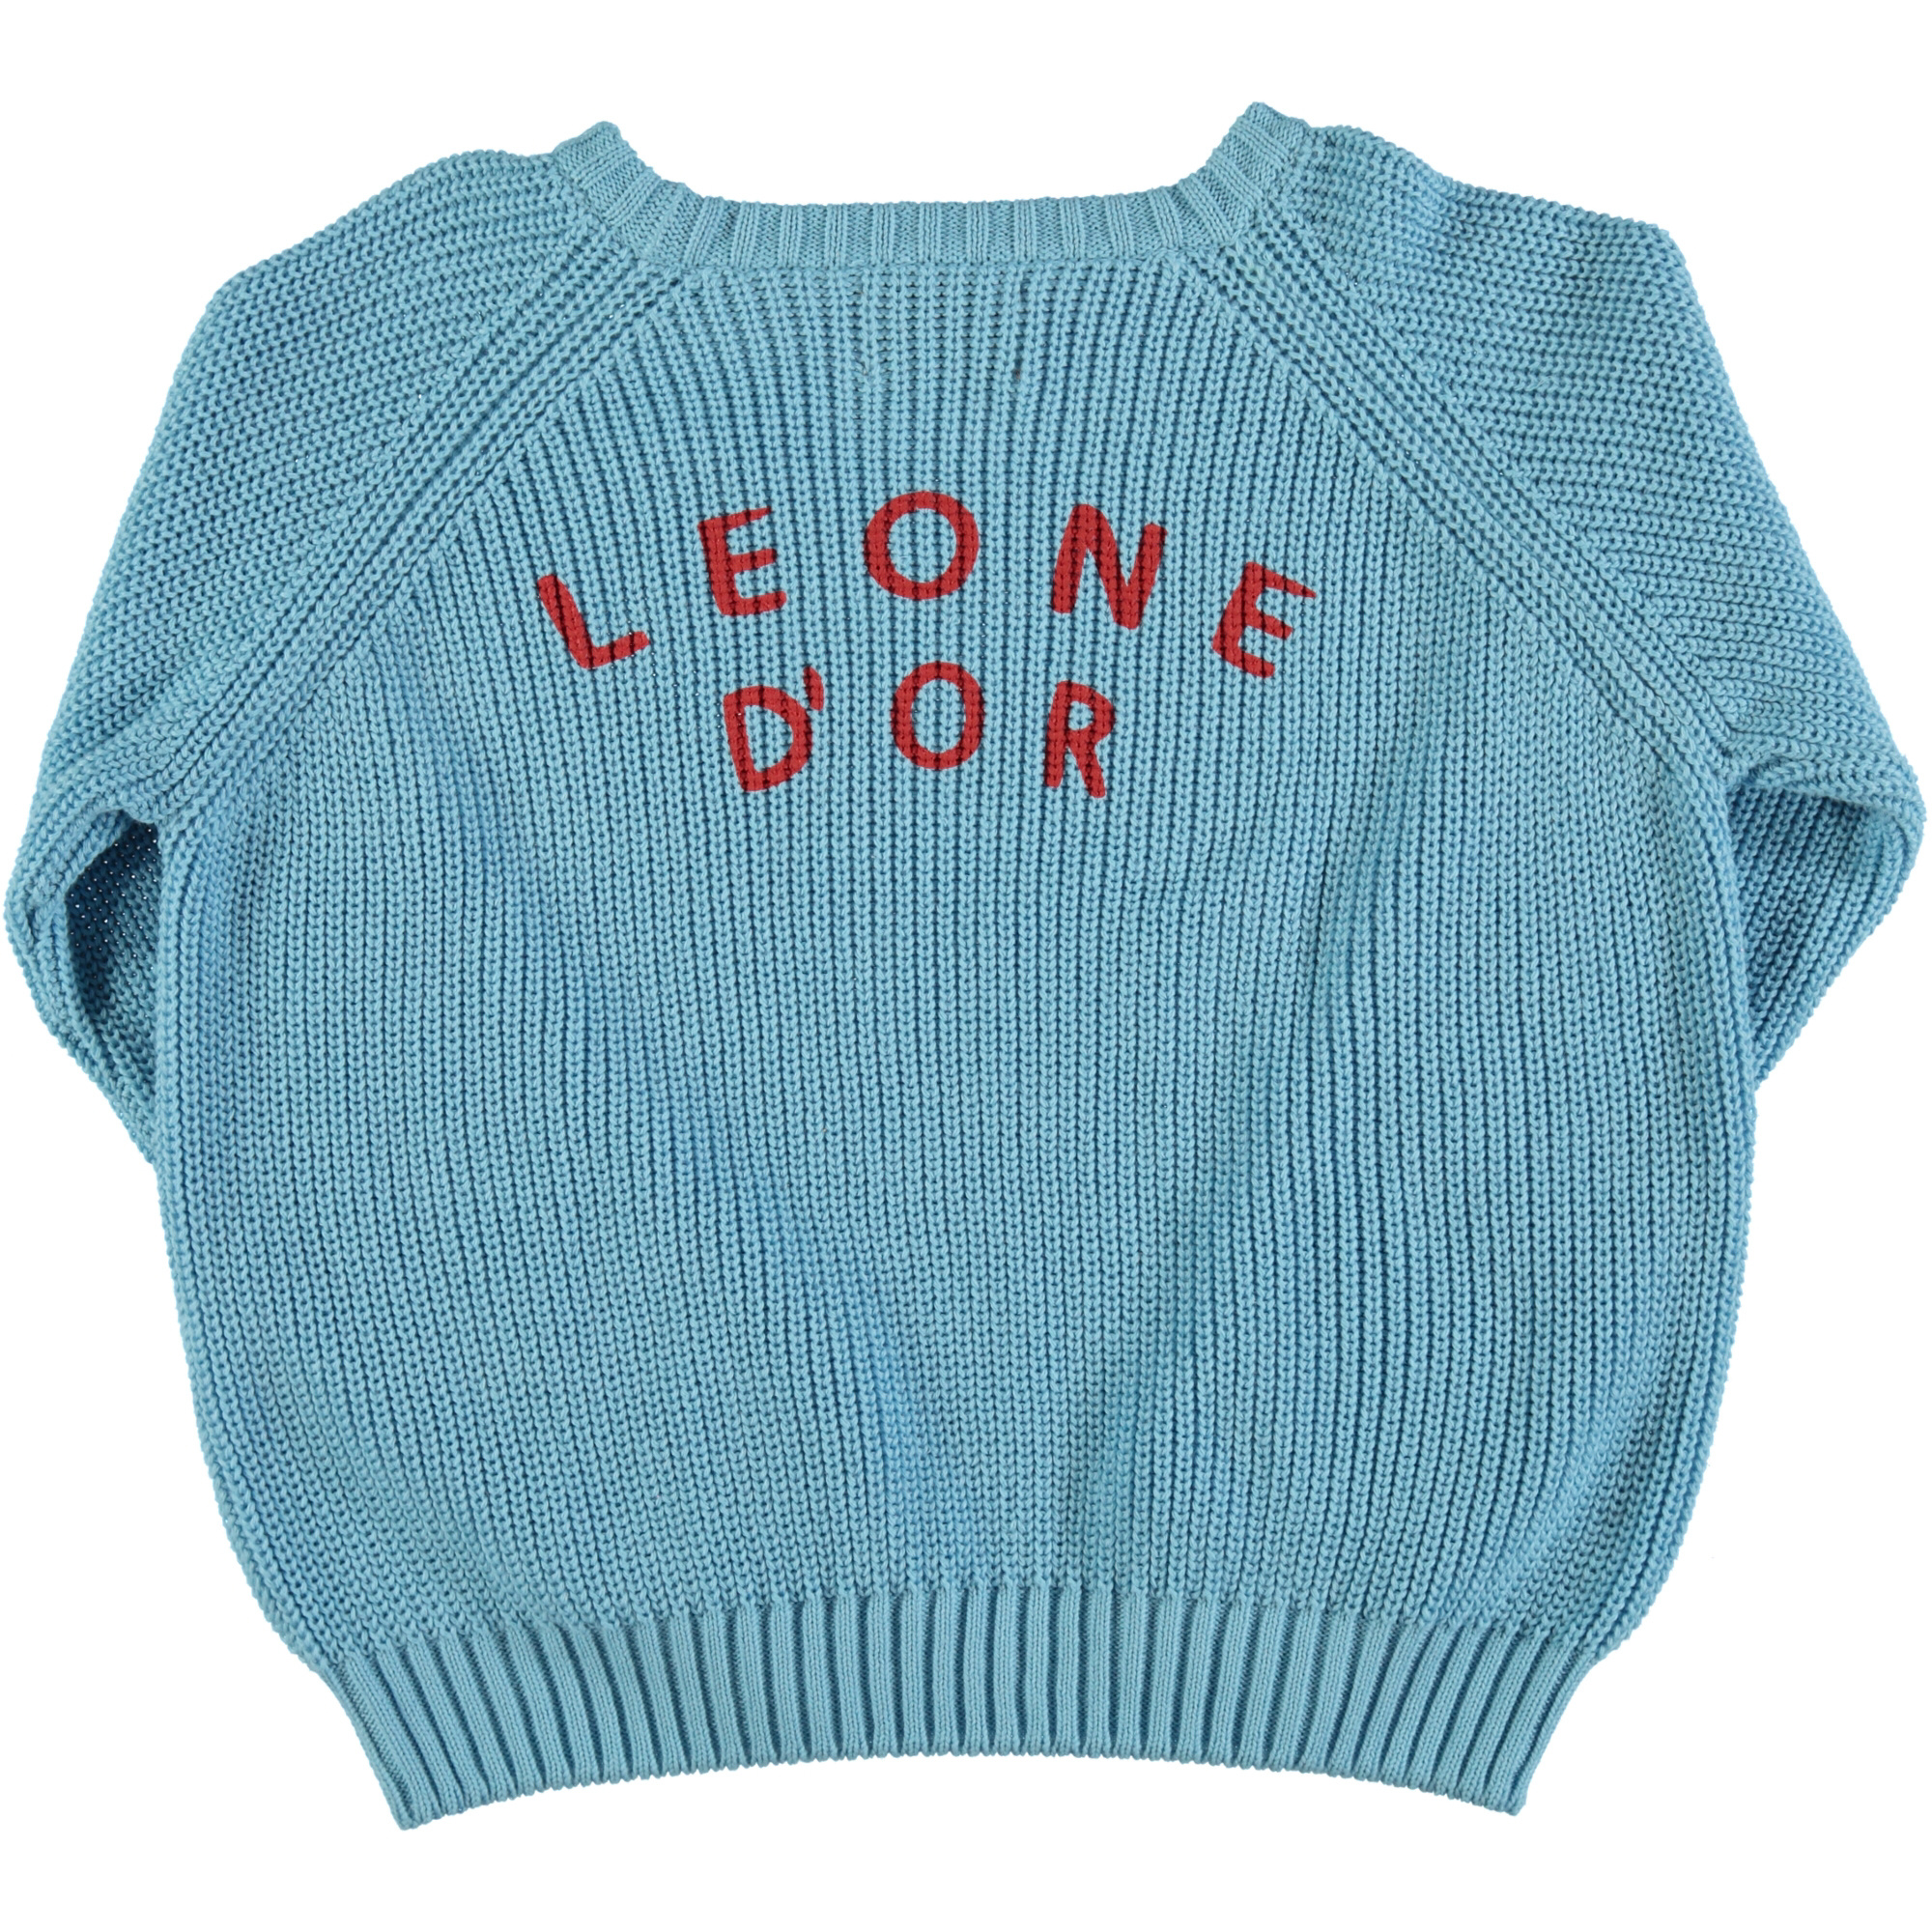 "knitted sweater | blue w/ garnet ""Leone d'or"" print-2"